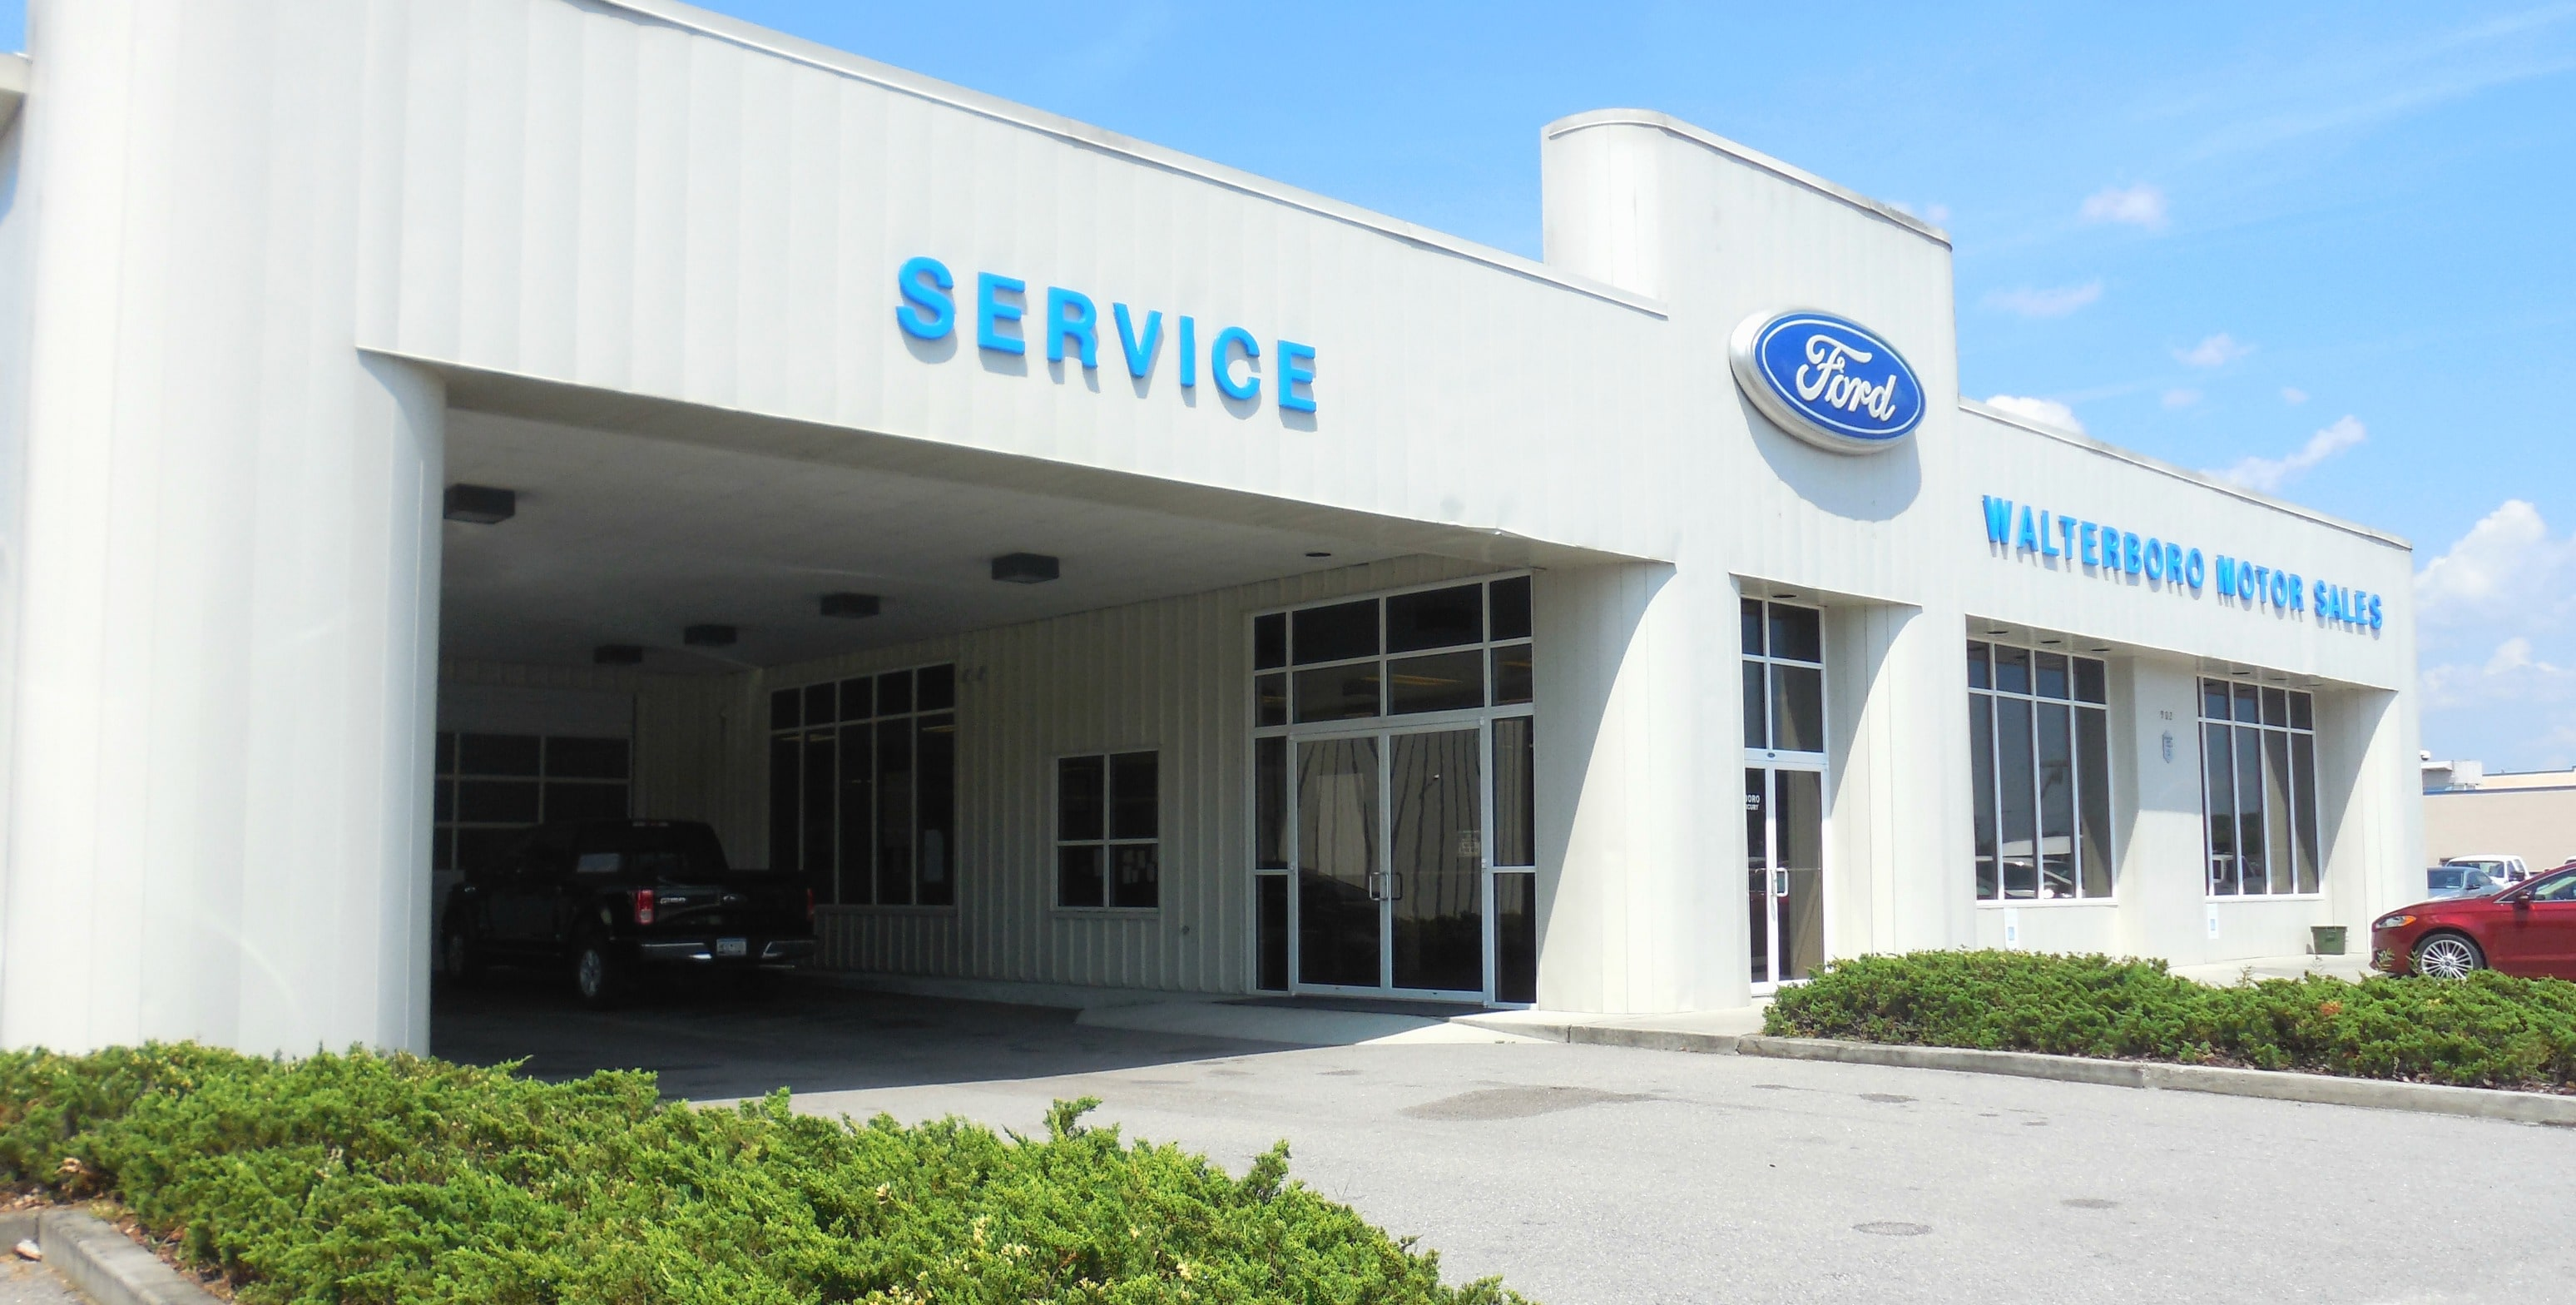 walterboro ford new ford dealership in walterboro sc 29488